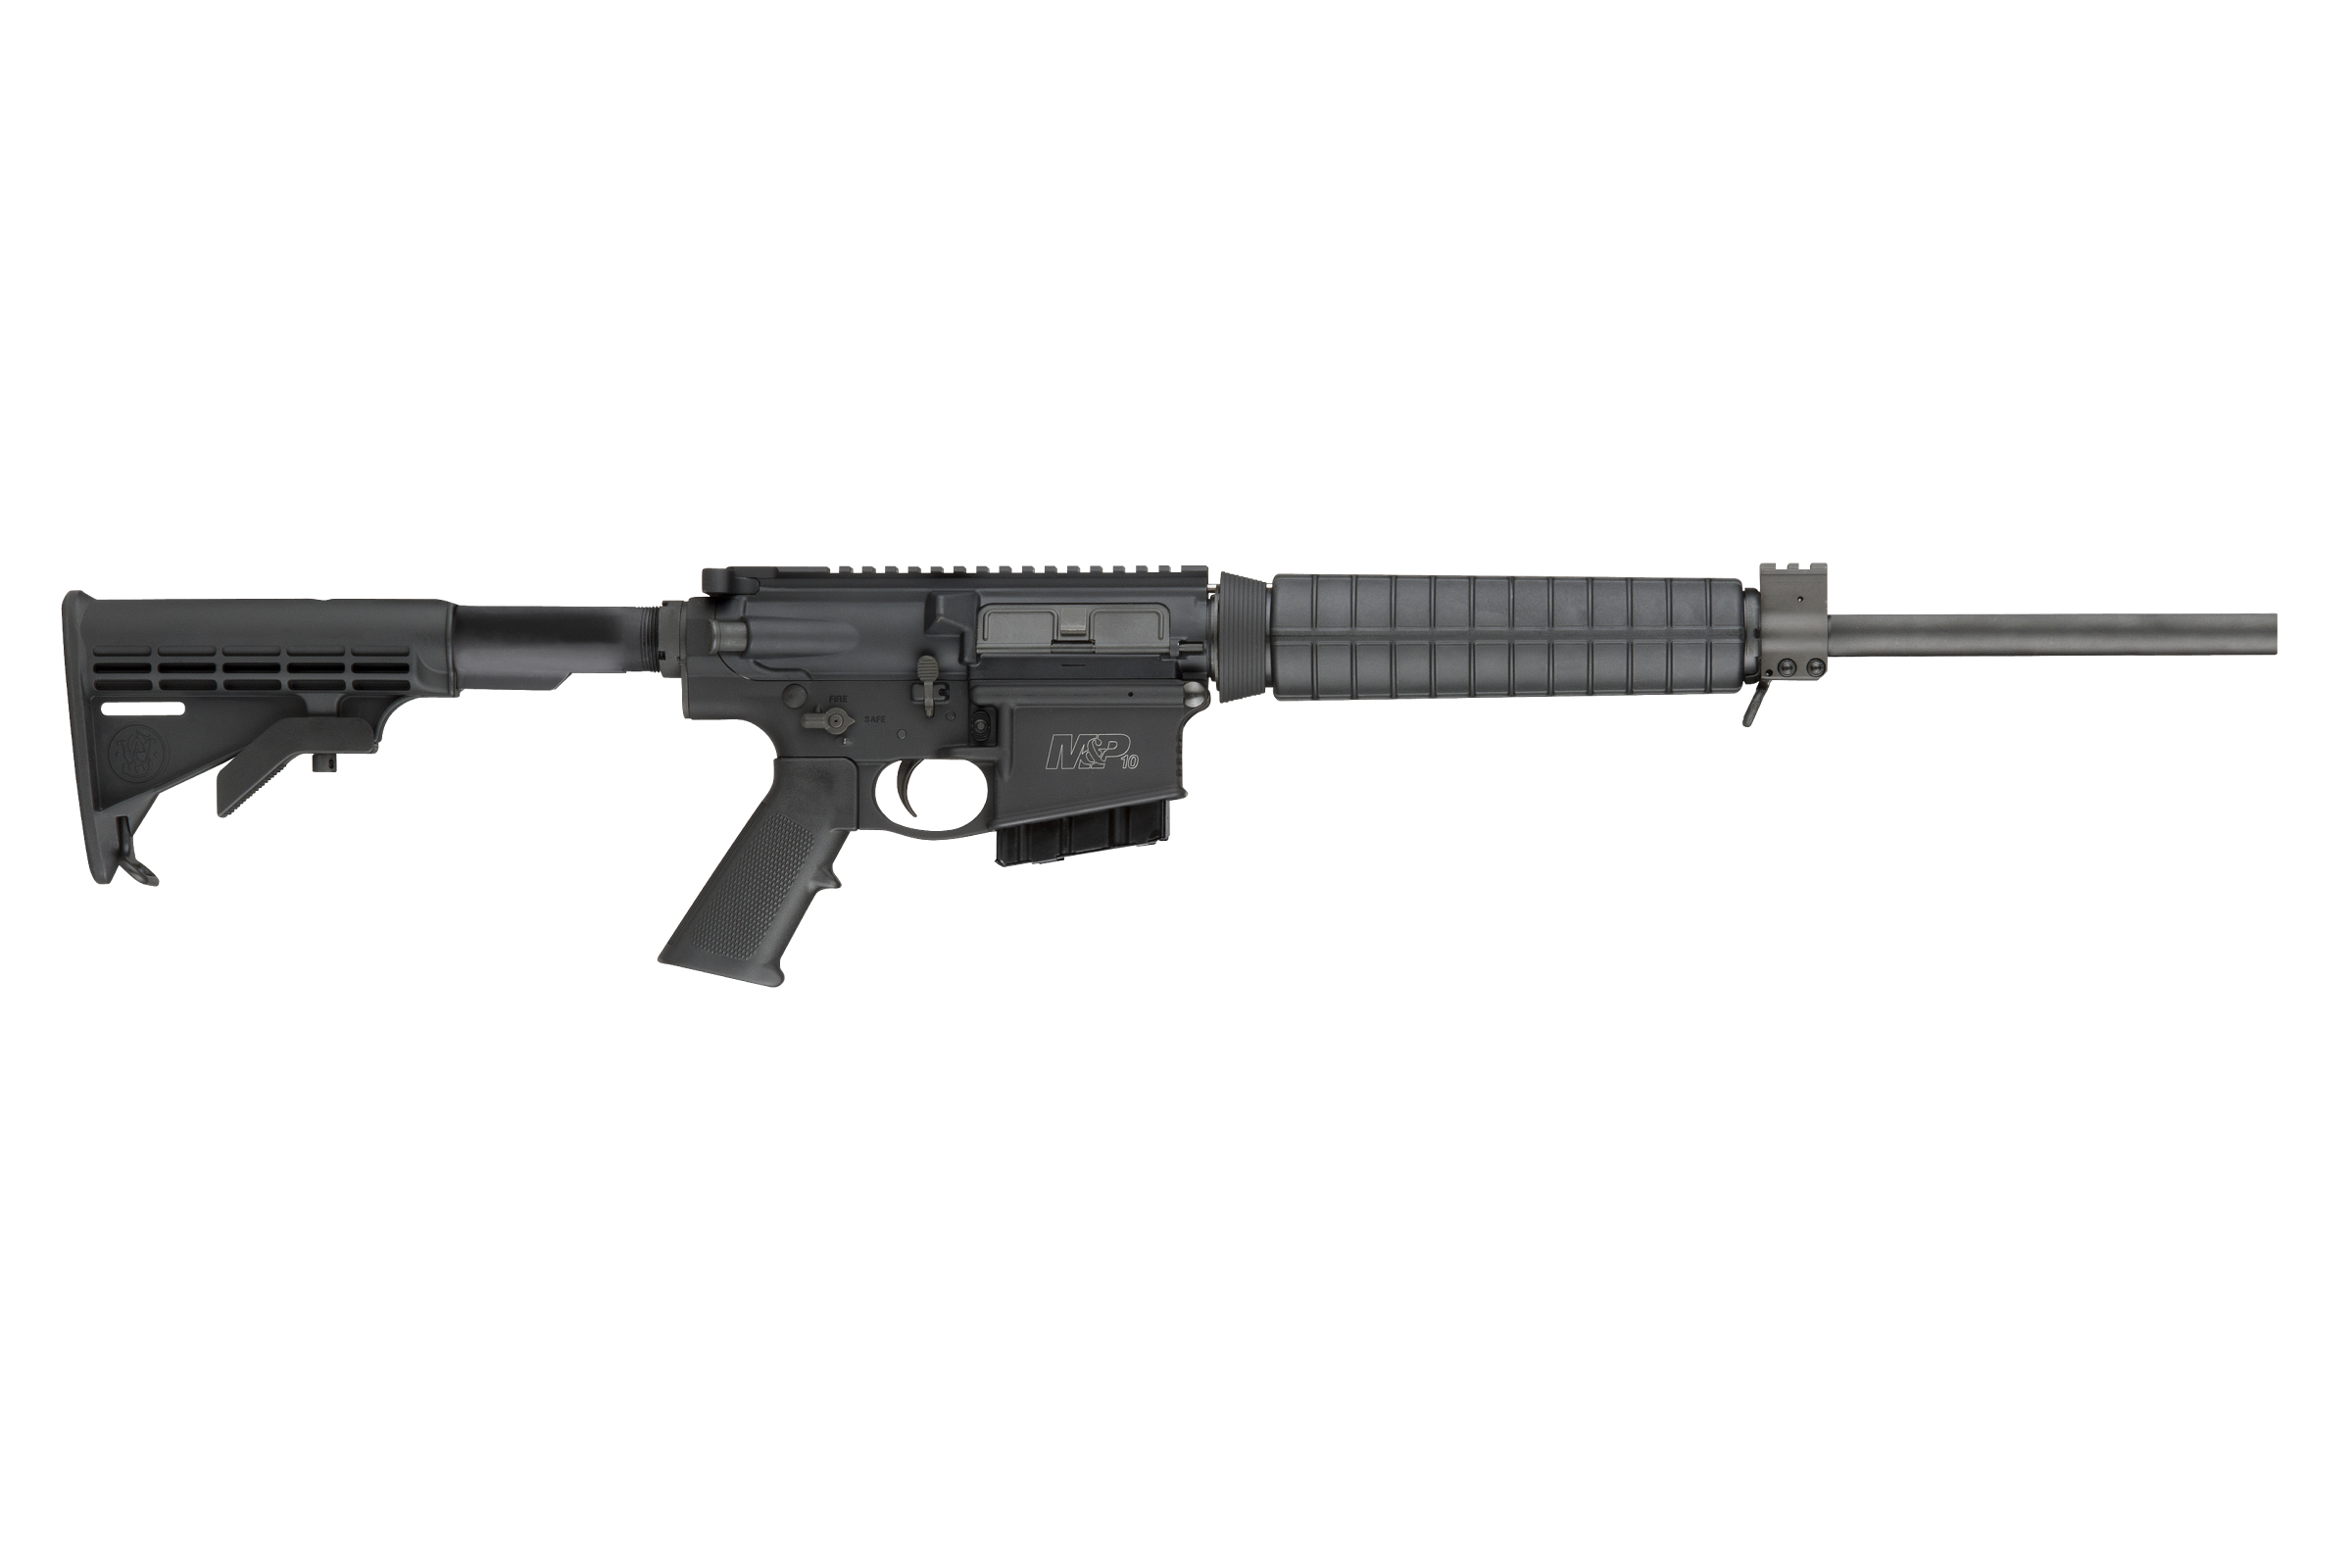 Smith and Wesson M&P10 COMPLIANT 7.62 X 51MM | 308 WIN